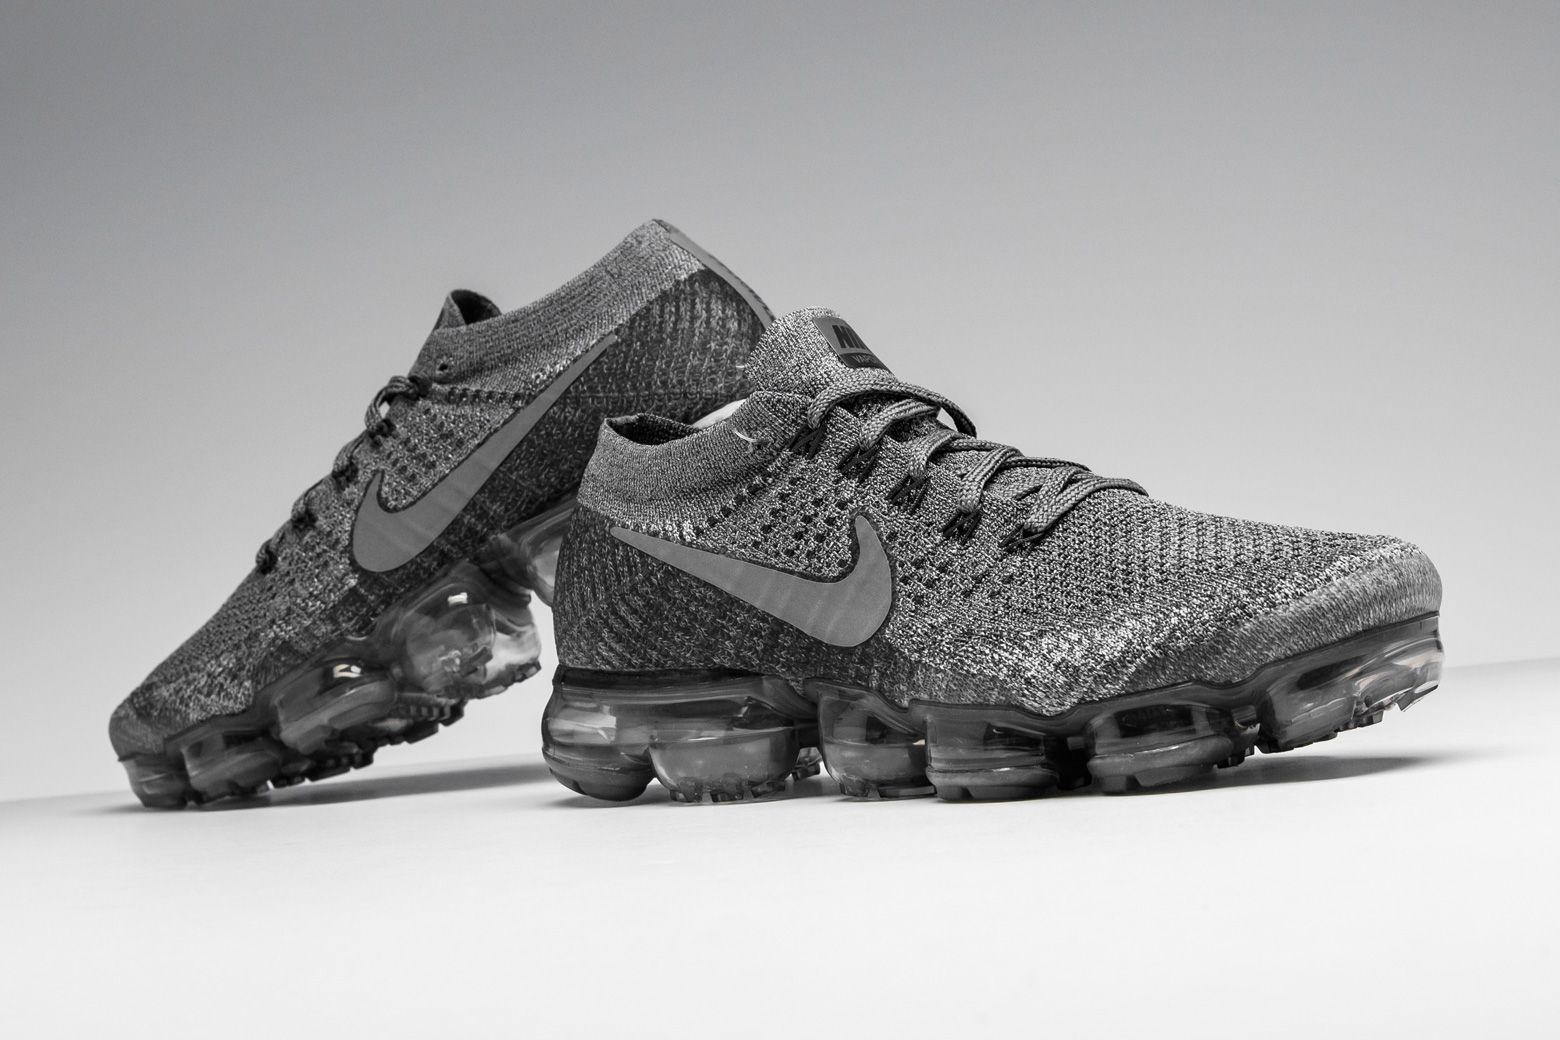 sale retailer 183c5 a36f0 Nike hasn't taken their foot off the gas in 2017, as they drop the  scorching hot VaporMax in